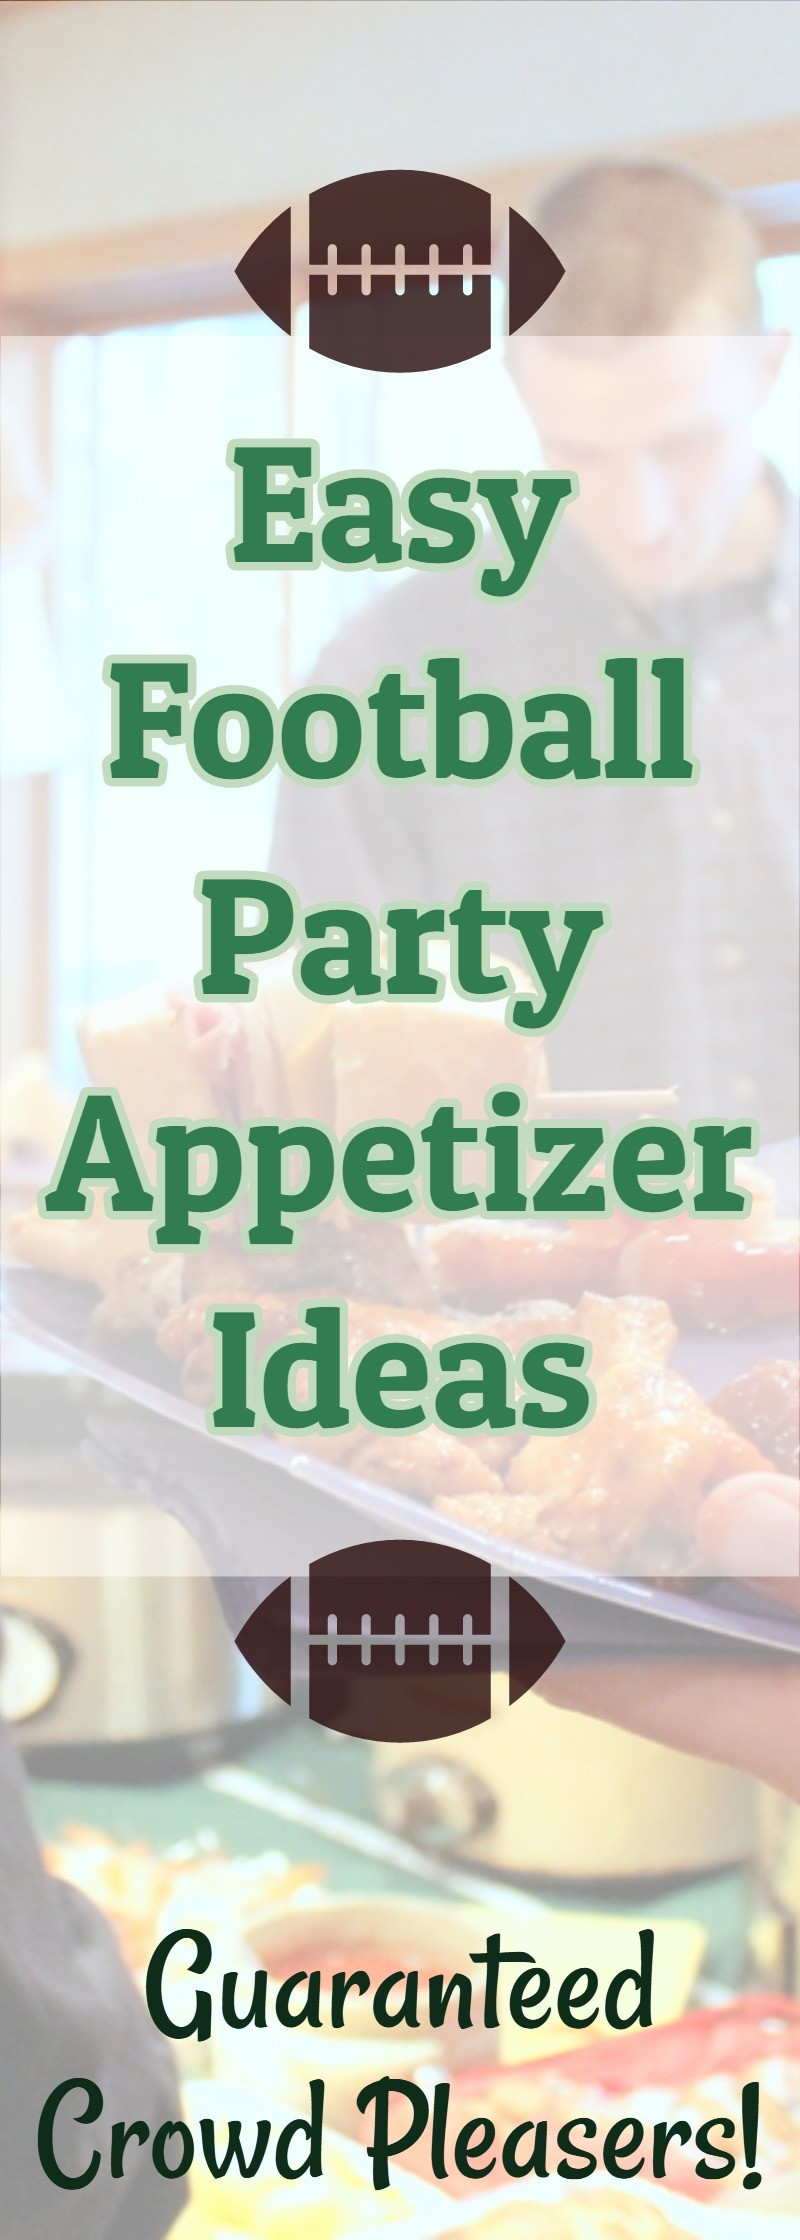 Best Easy Party Appetizers – 10 Easy & Guaranteed Crowd Pleasers